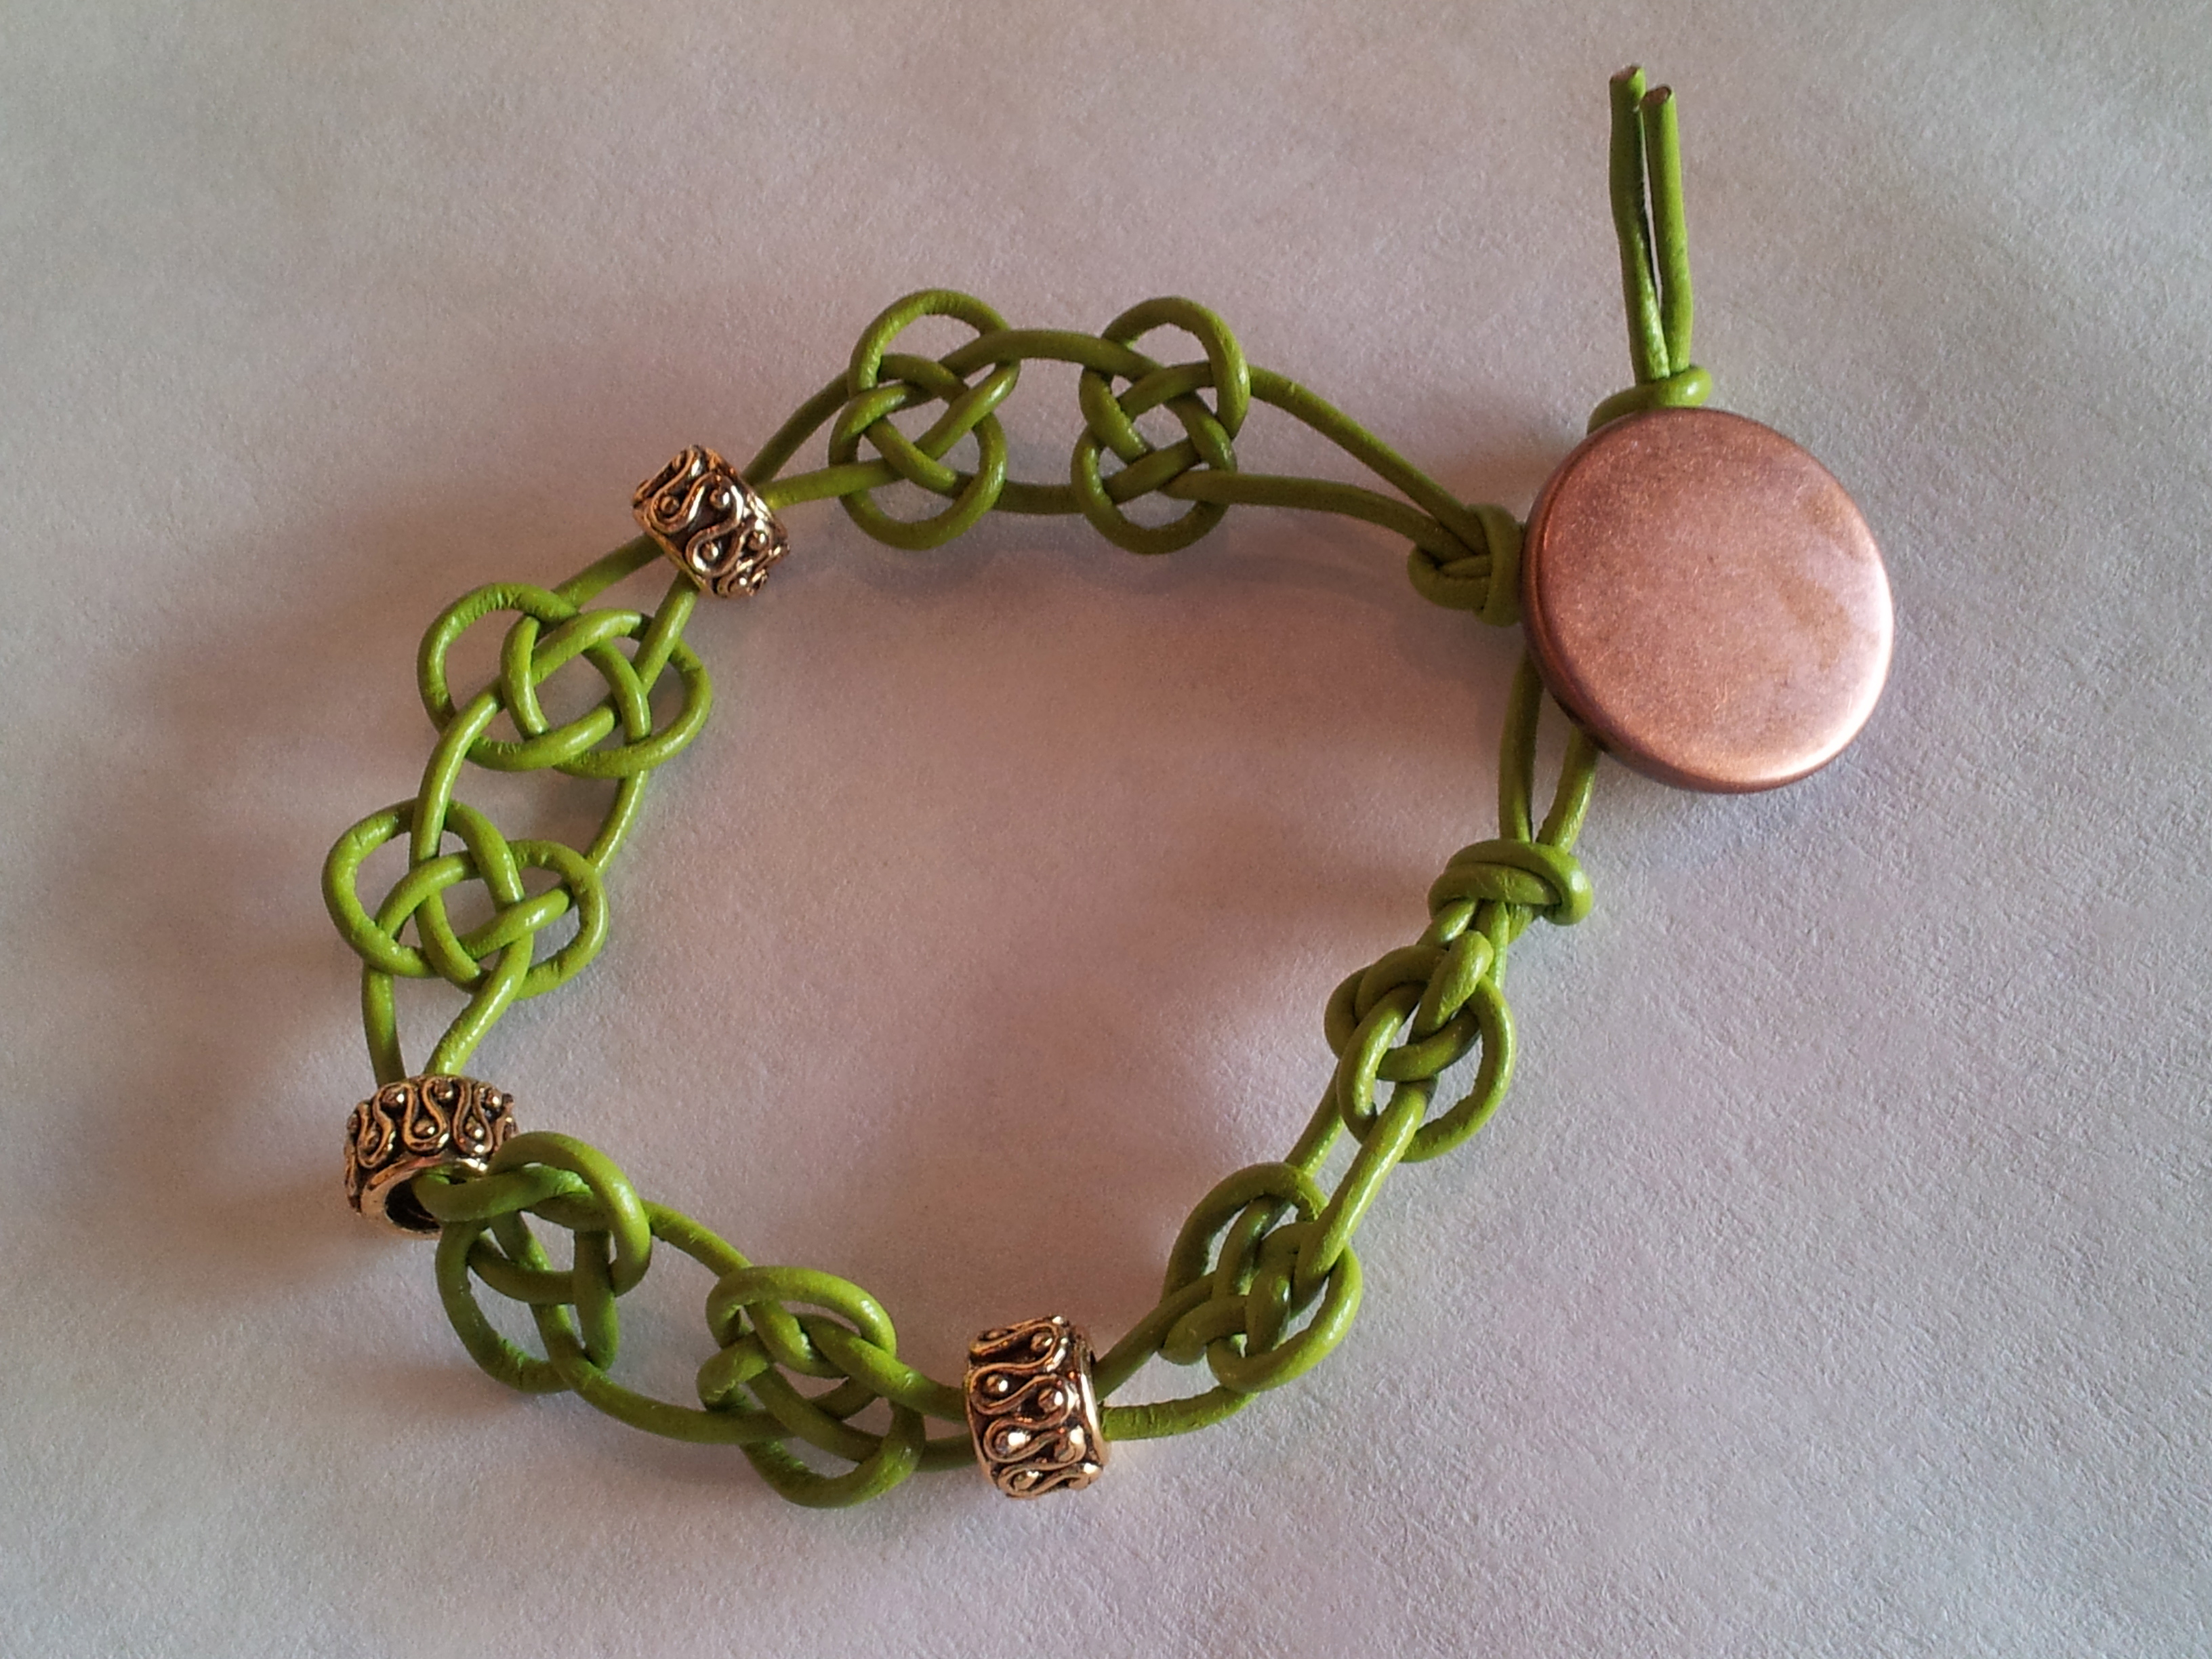 bracelet by art friendship tutorial on deviantart